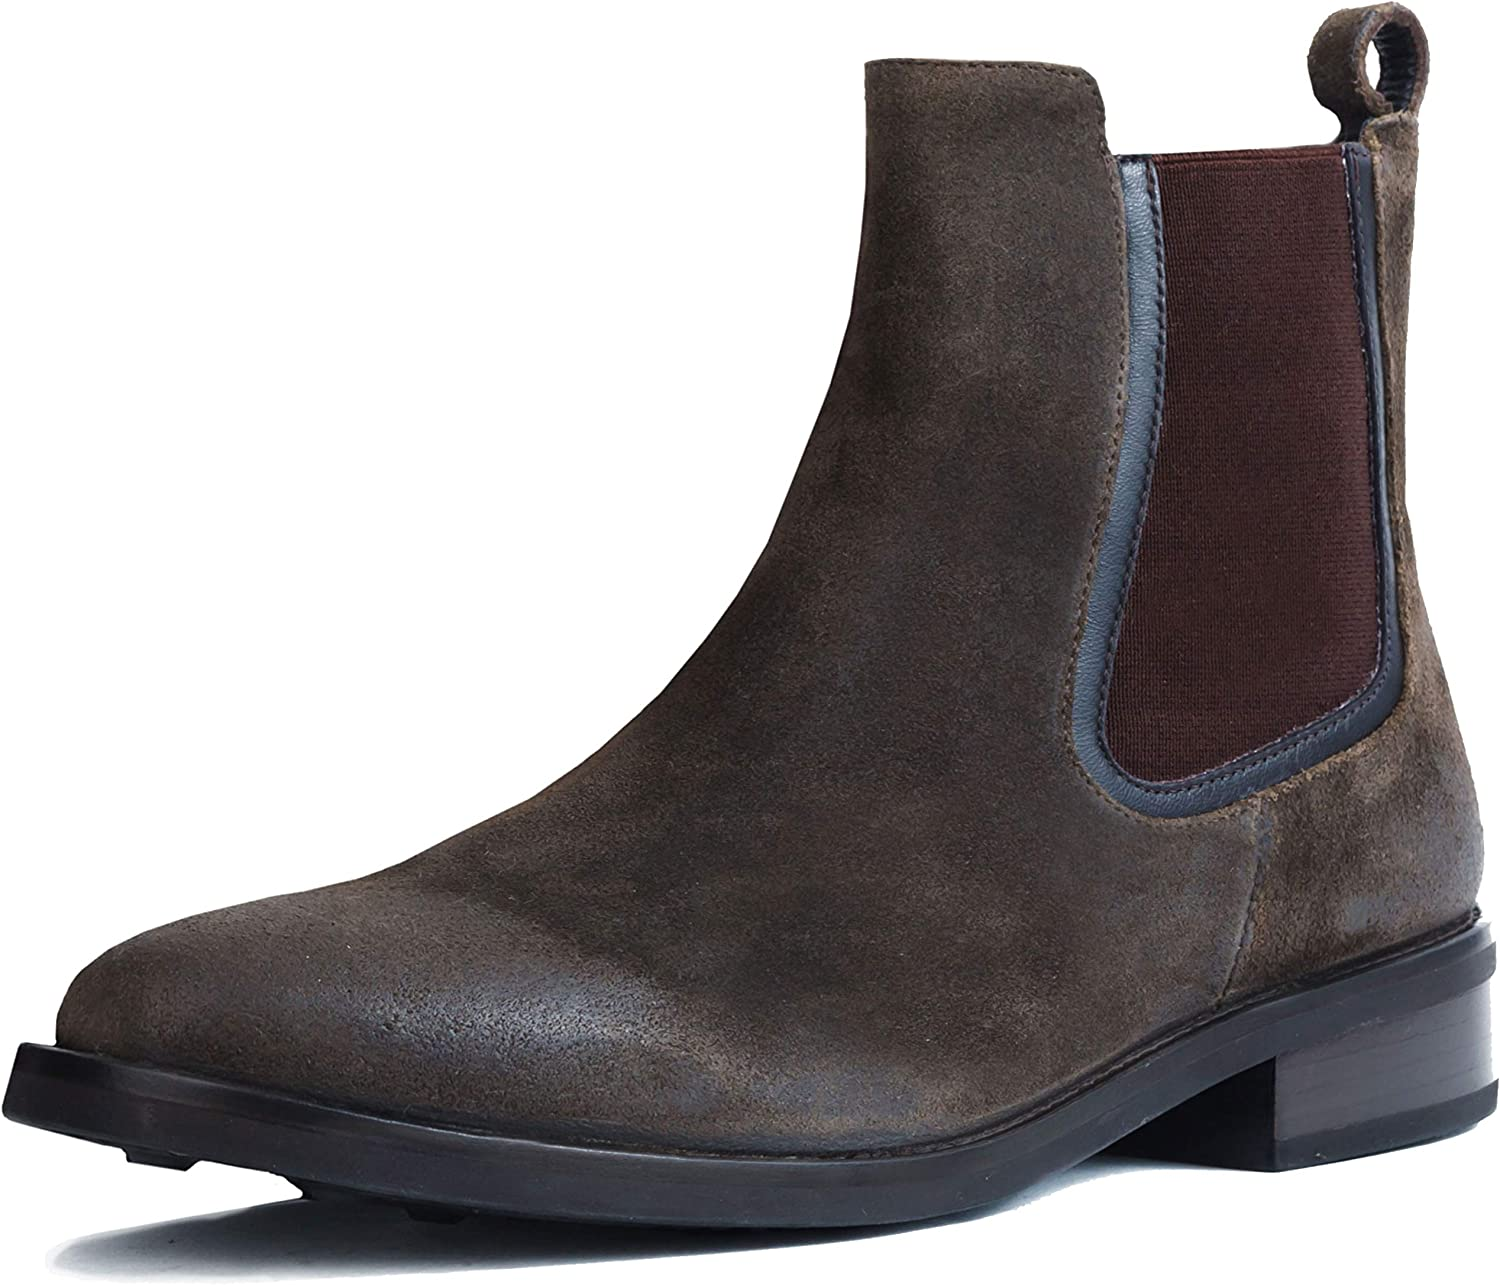 Thursday Boot Company Duchess kvinnor 65533; 65533;s 65533;s 65533;s Chelsea Boot  fabriksbutik